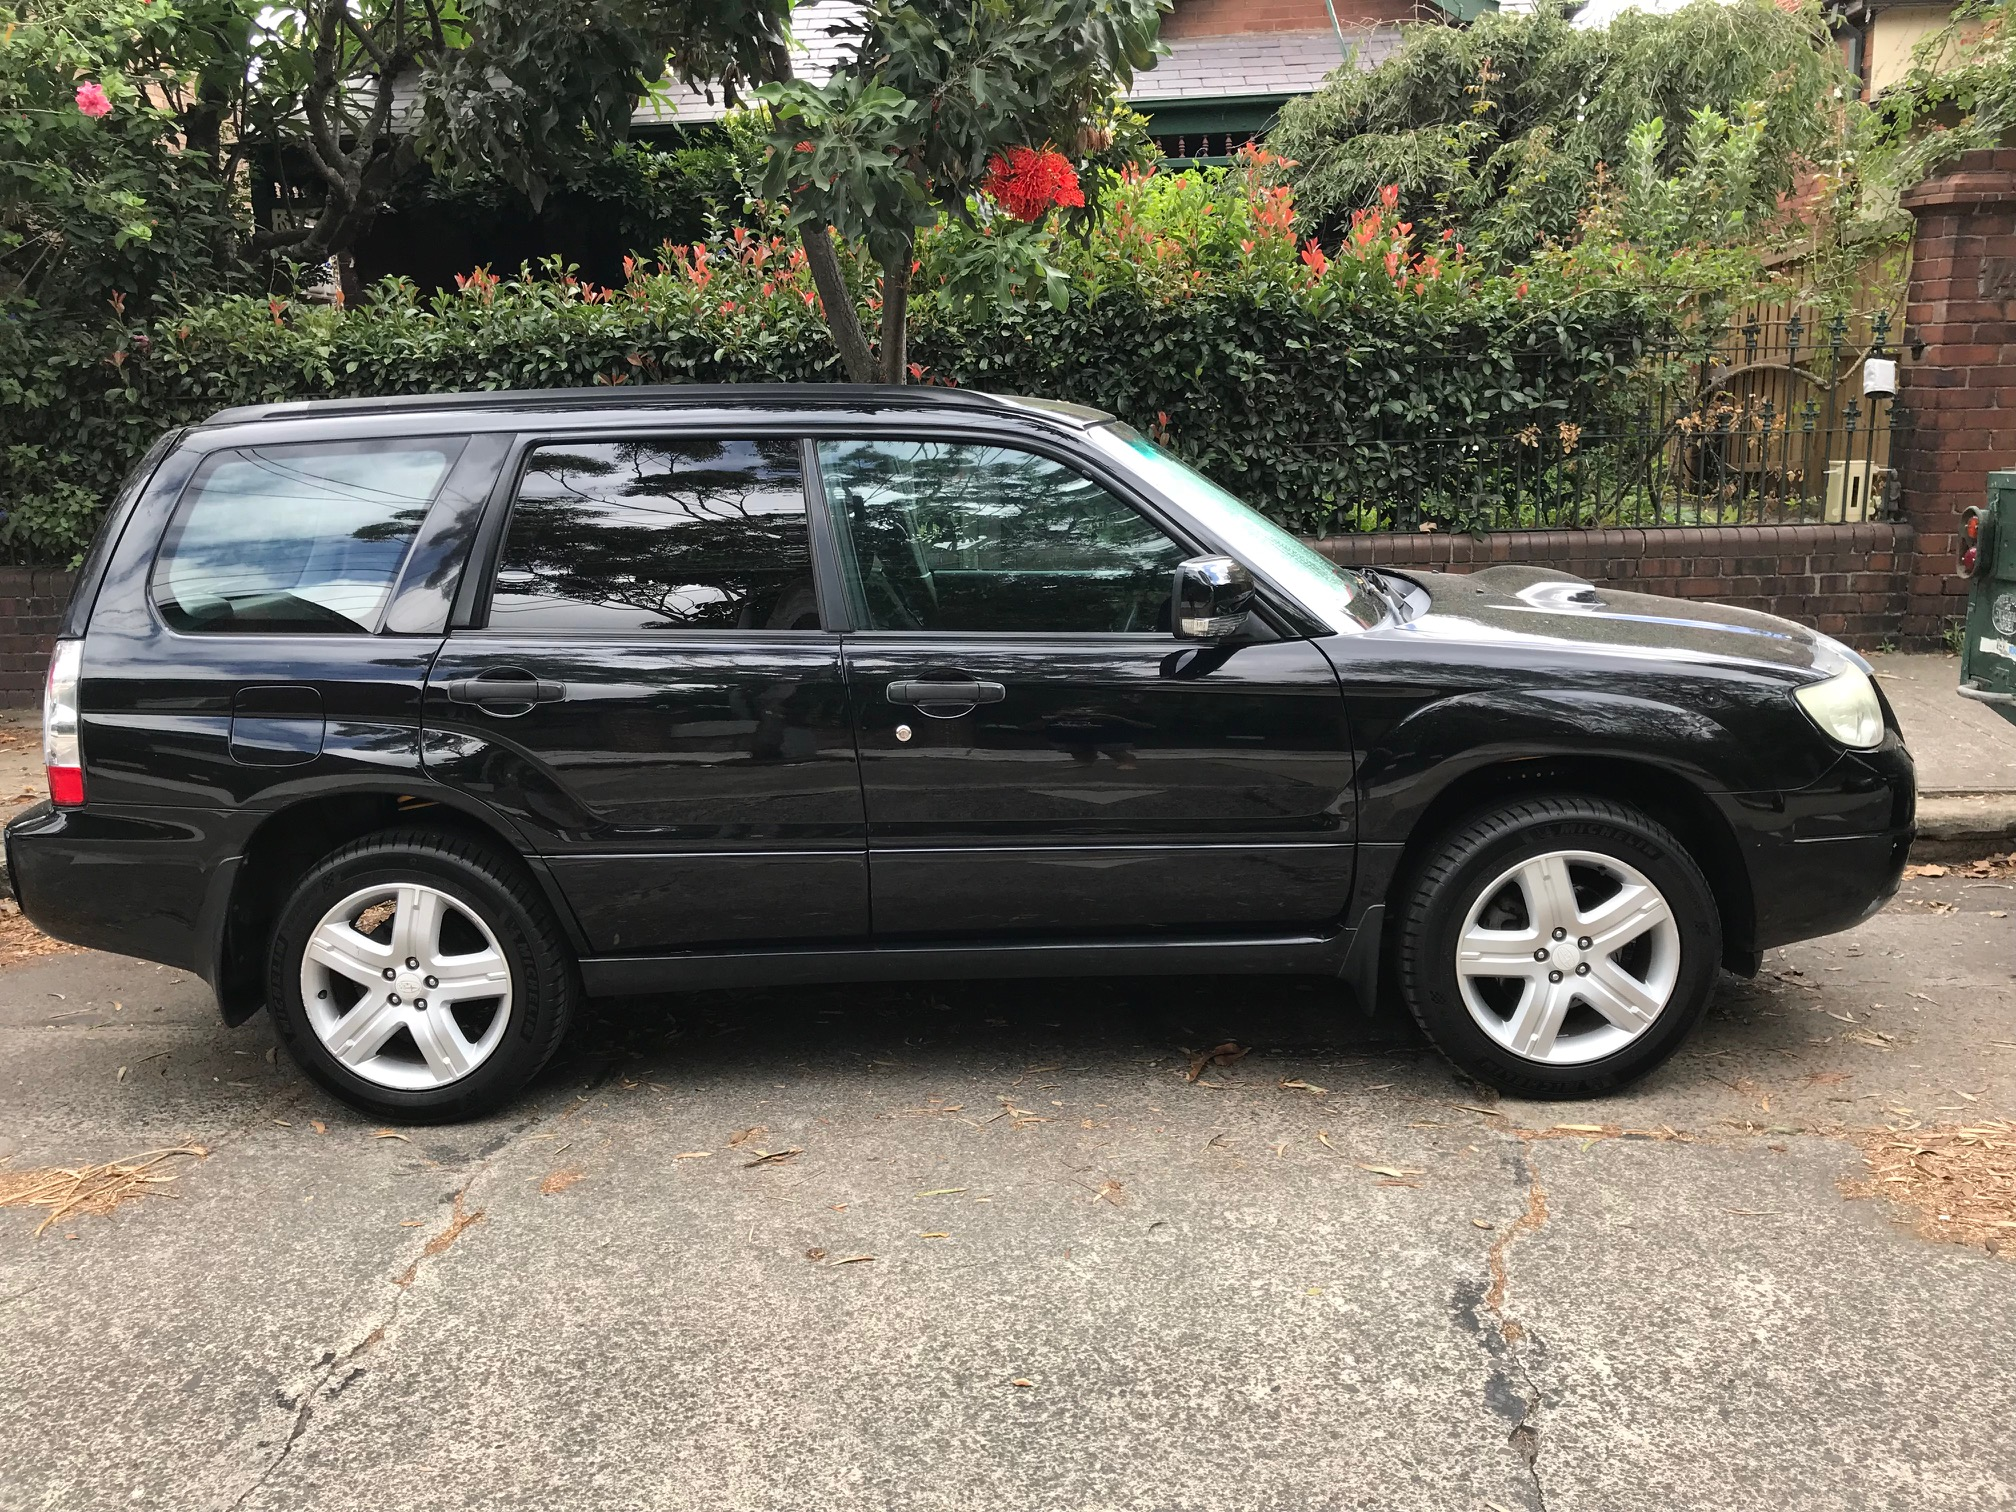 Picture of Ashton's 2006 Subaru Forester